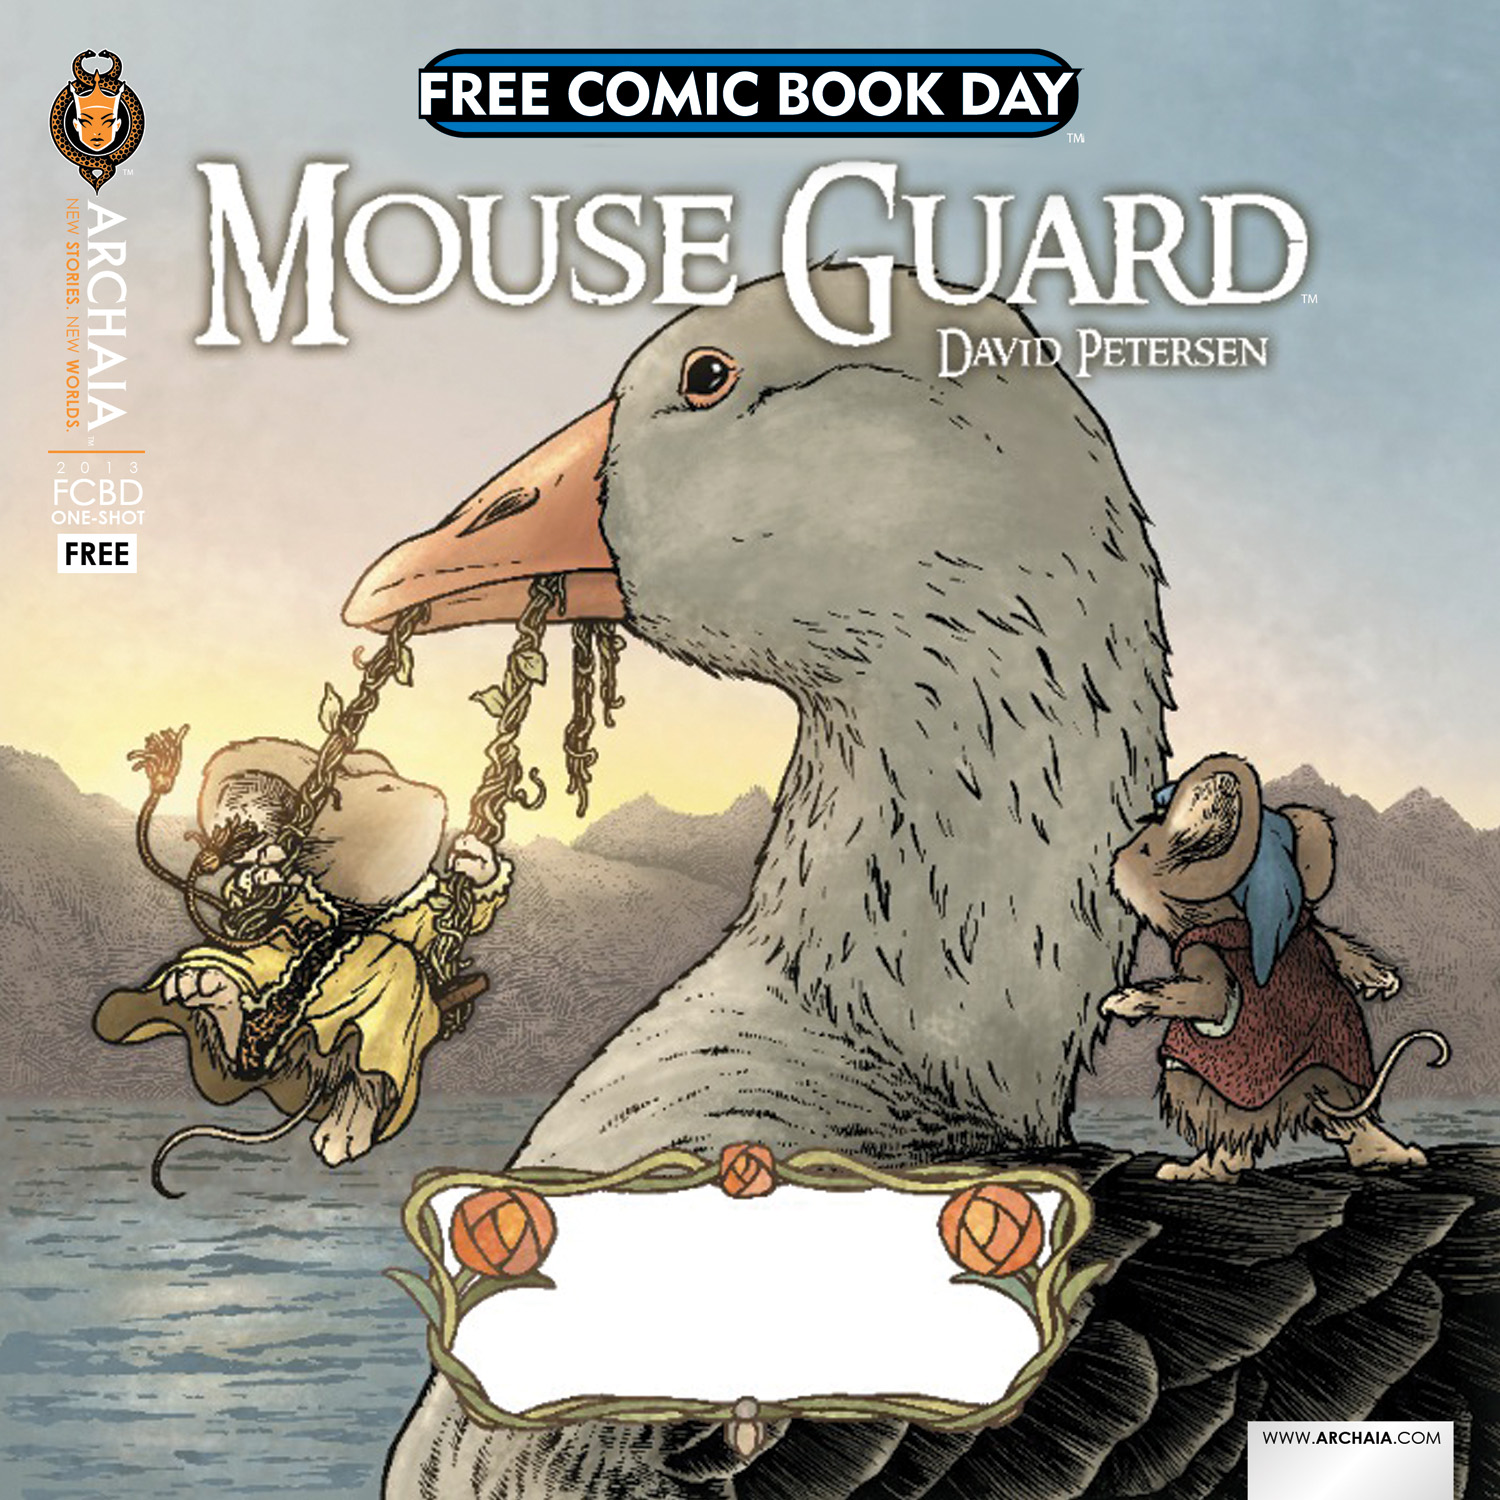 Free Comic Book Day 2015: Preview: Mouse Guard/Rust 2013 Free Comic Book Day Flip